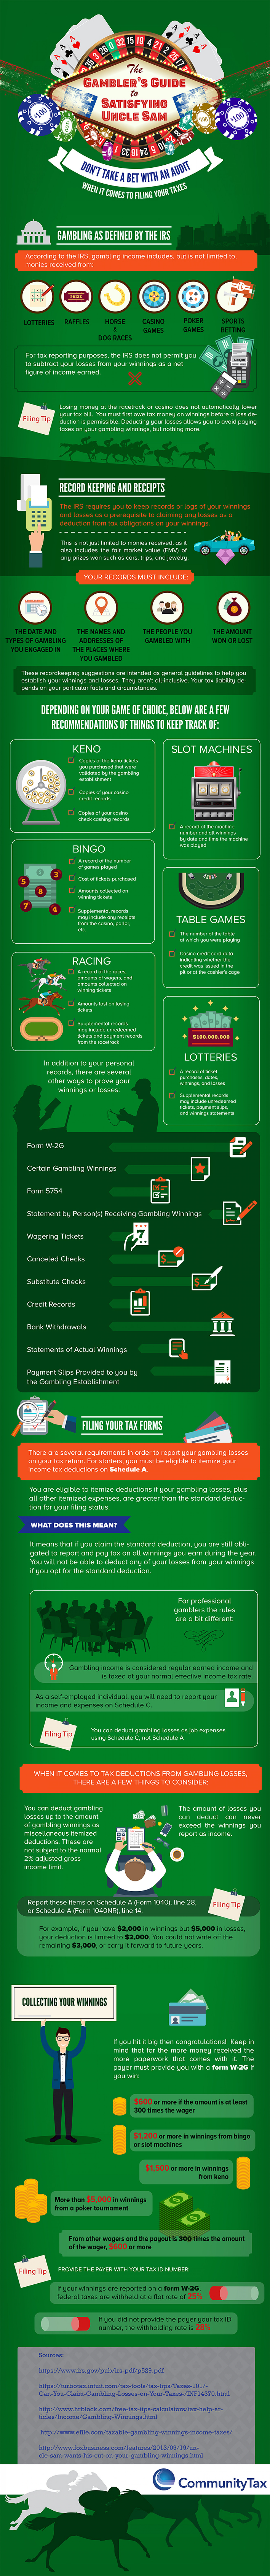 The Gambler's Guide to Taxes Infographic